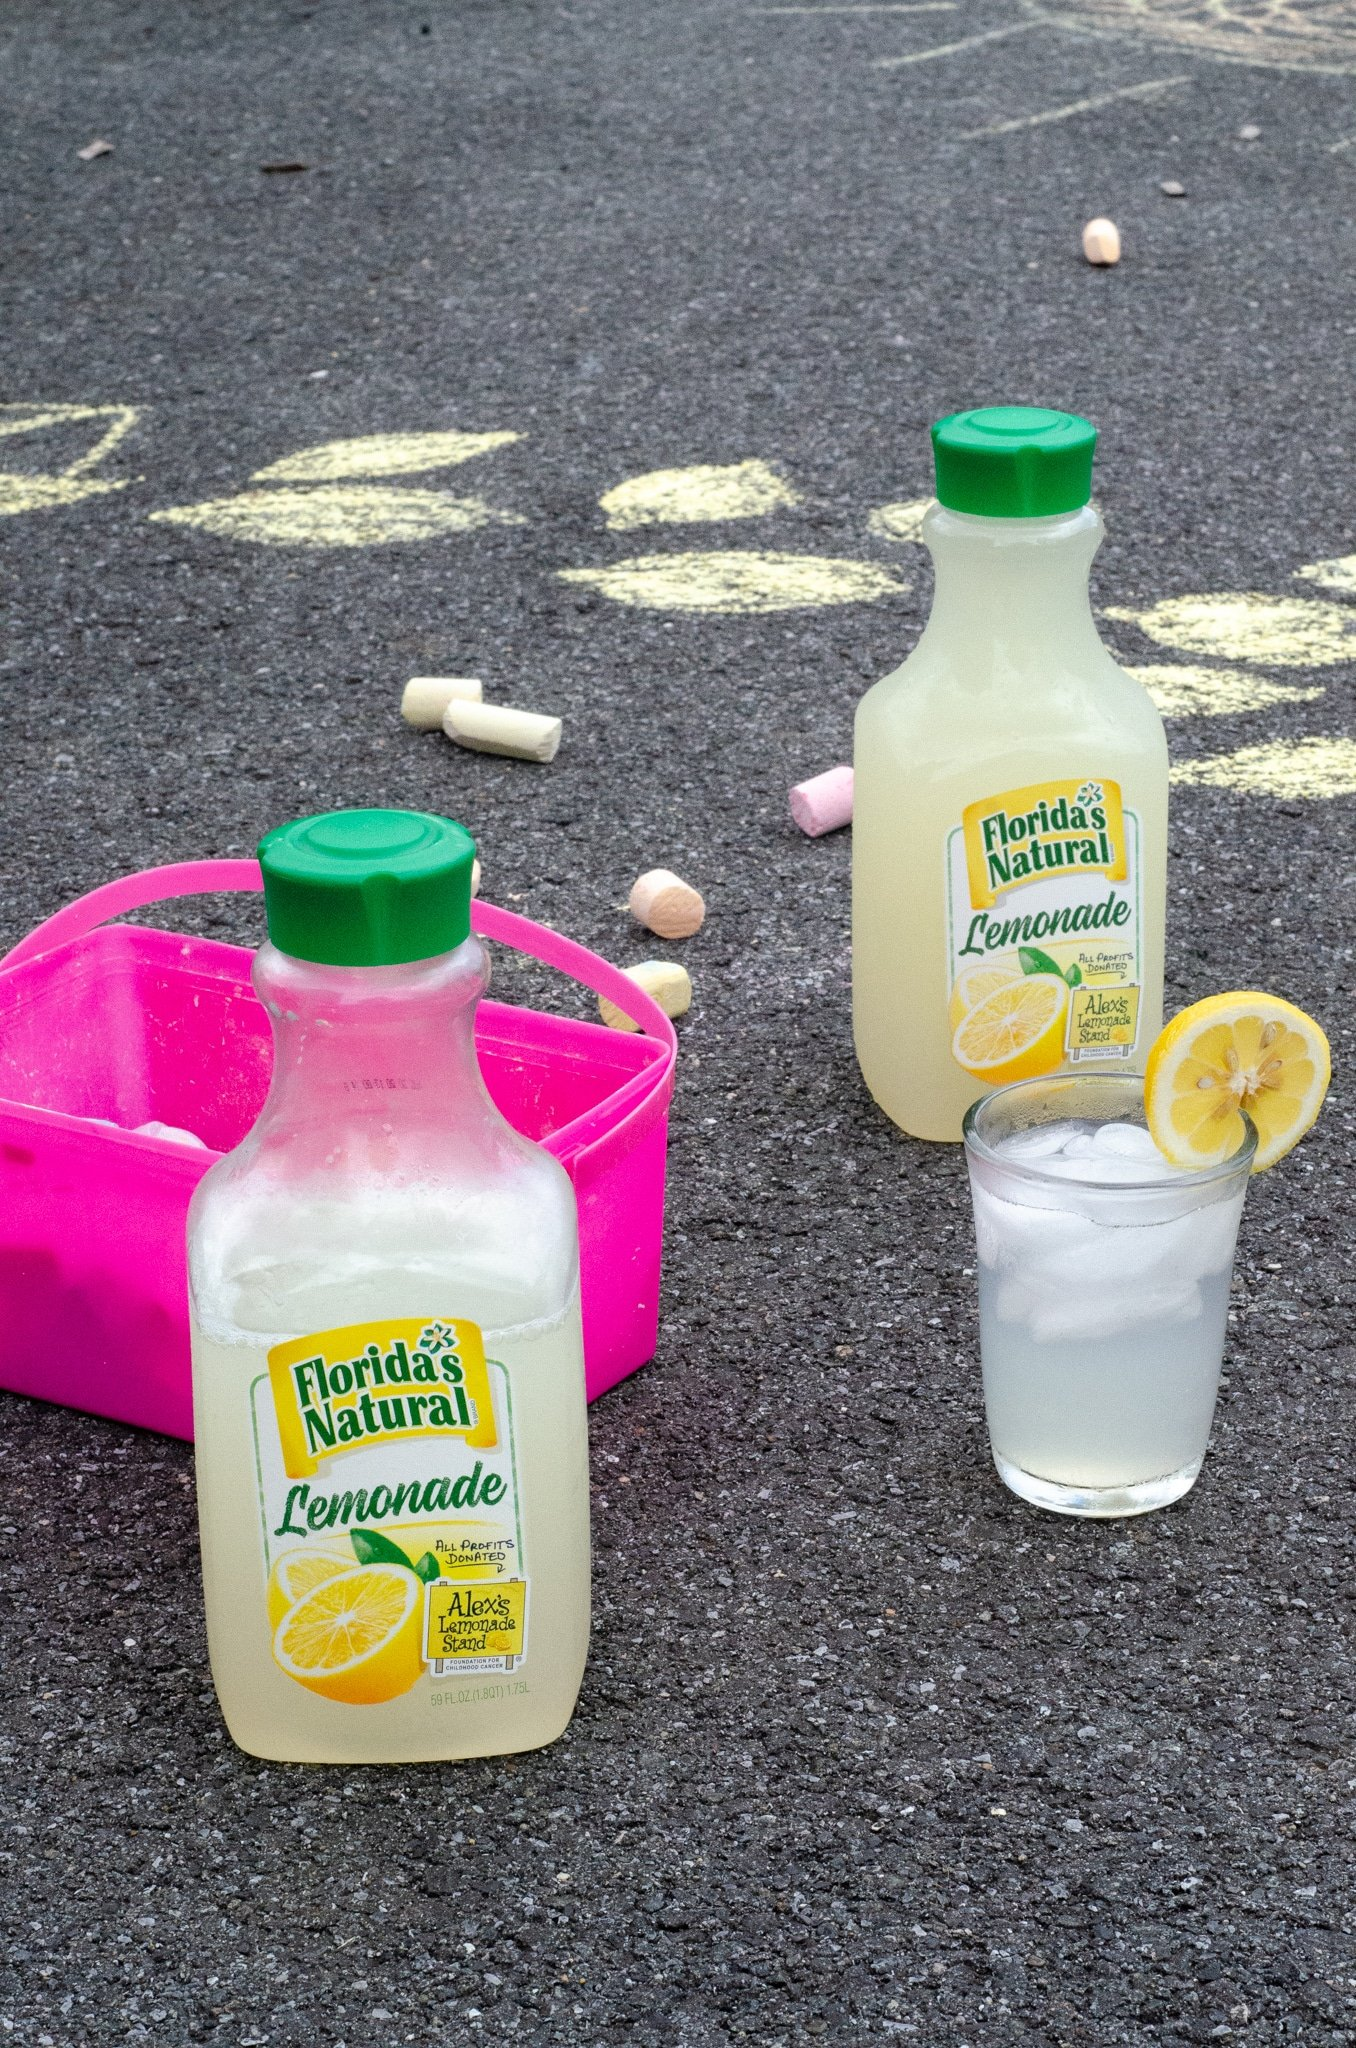 Lemonade Inspired Art Concrete. Looking for a fun way to keep the kids entertained this summer? Celebrate the start of summer with Lemonade-Inspired Art In the Backyard.